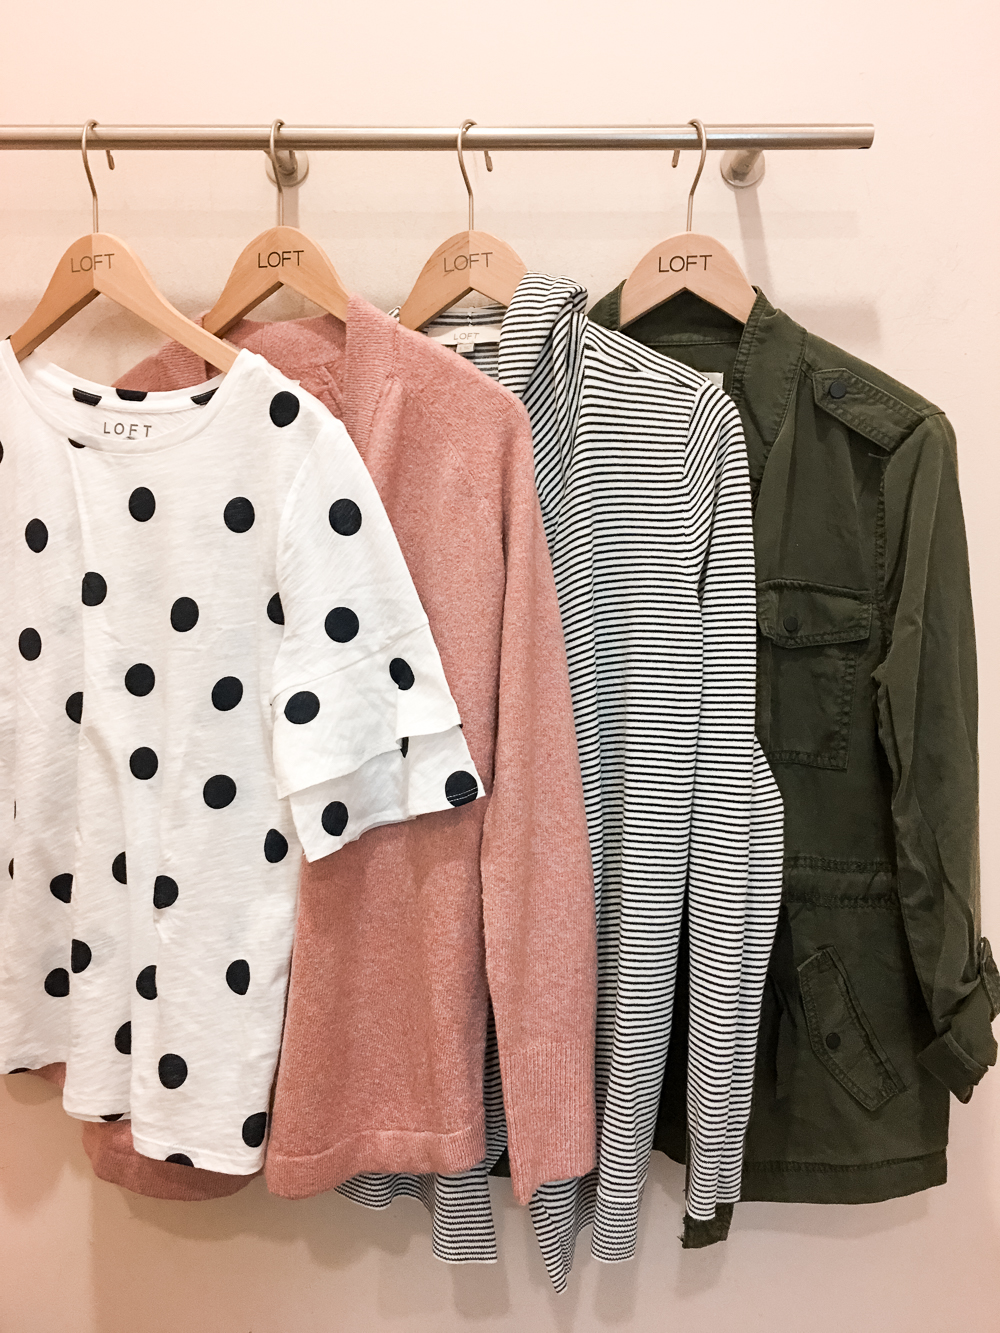 Don T Miss These Labor Day Sales Loft J Crew Dressing Room Reviews